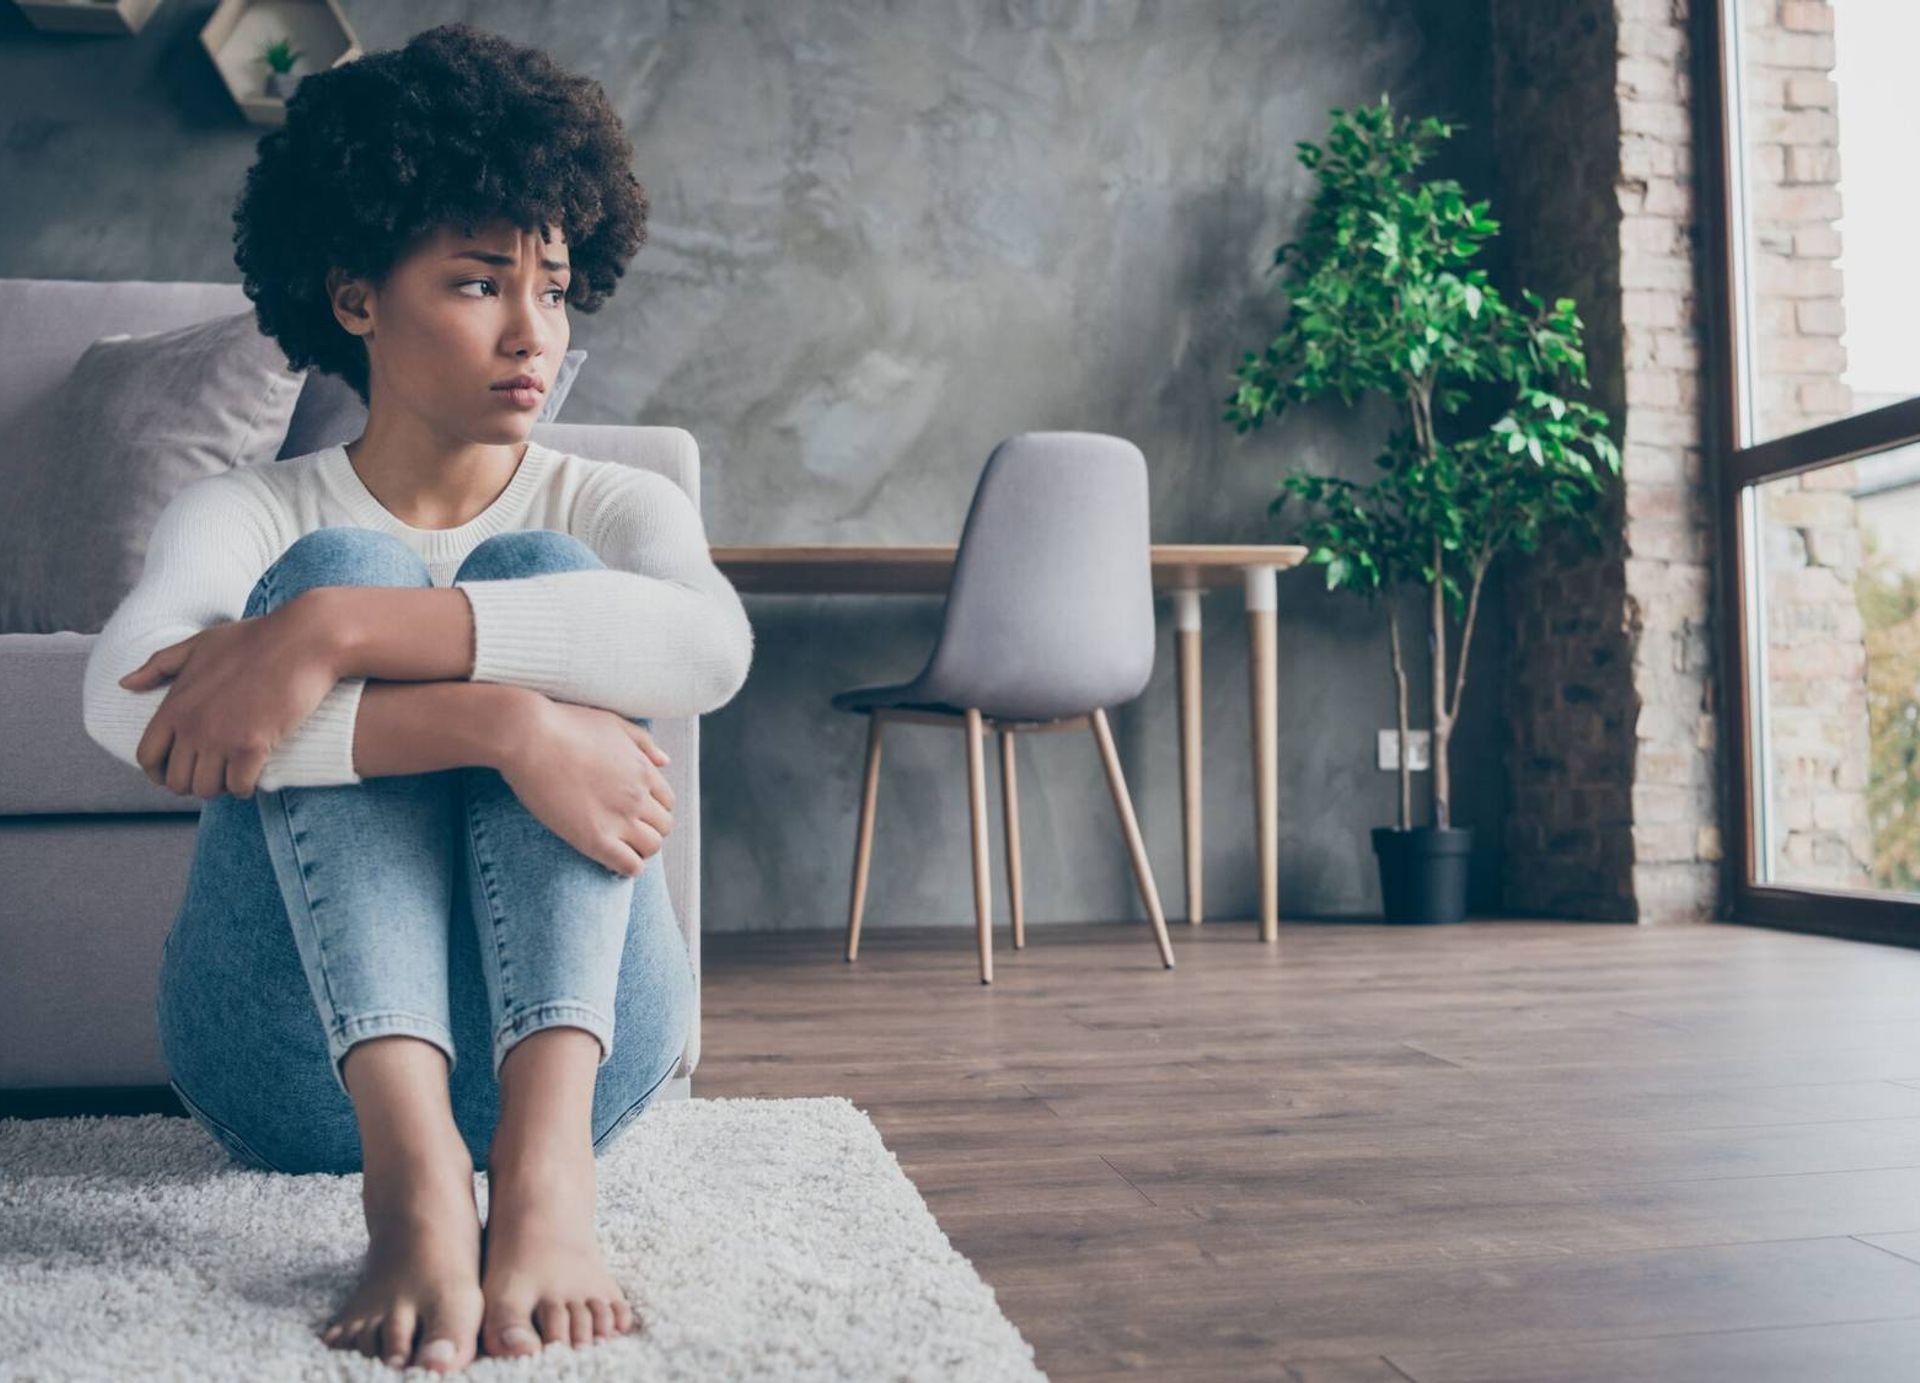 Woman sitting on floor looking out window